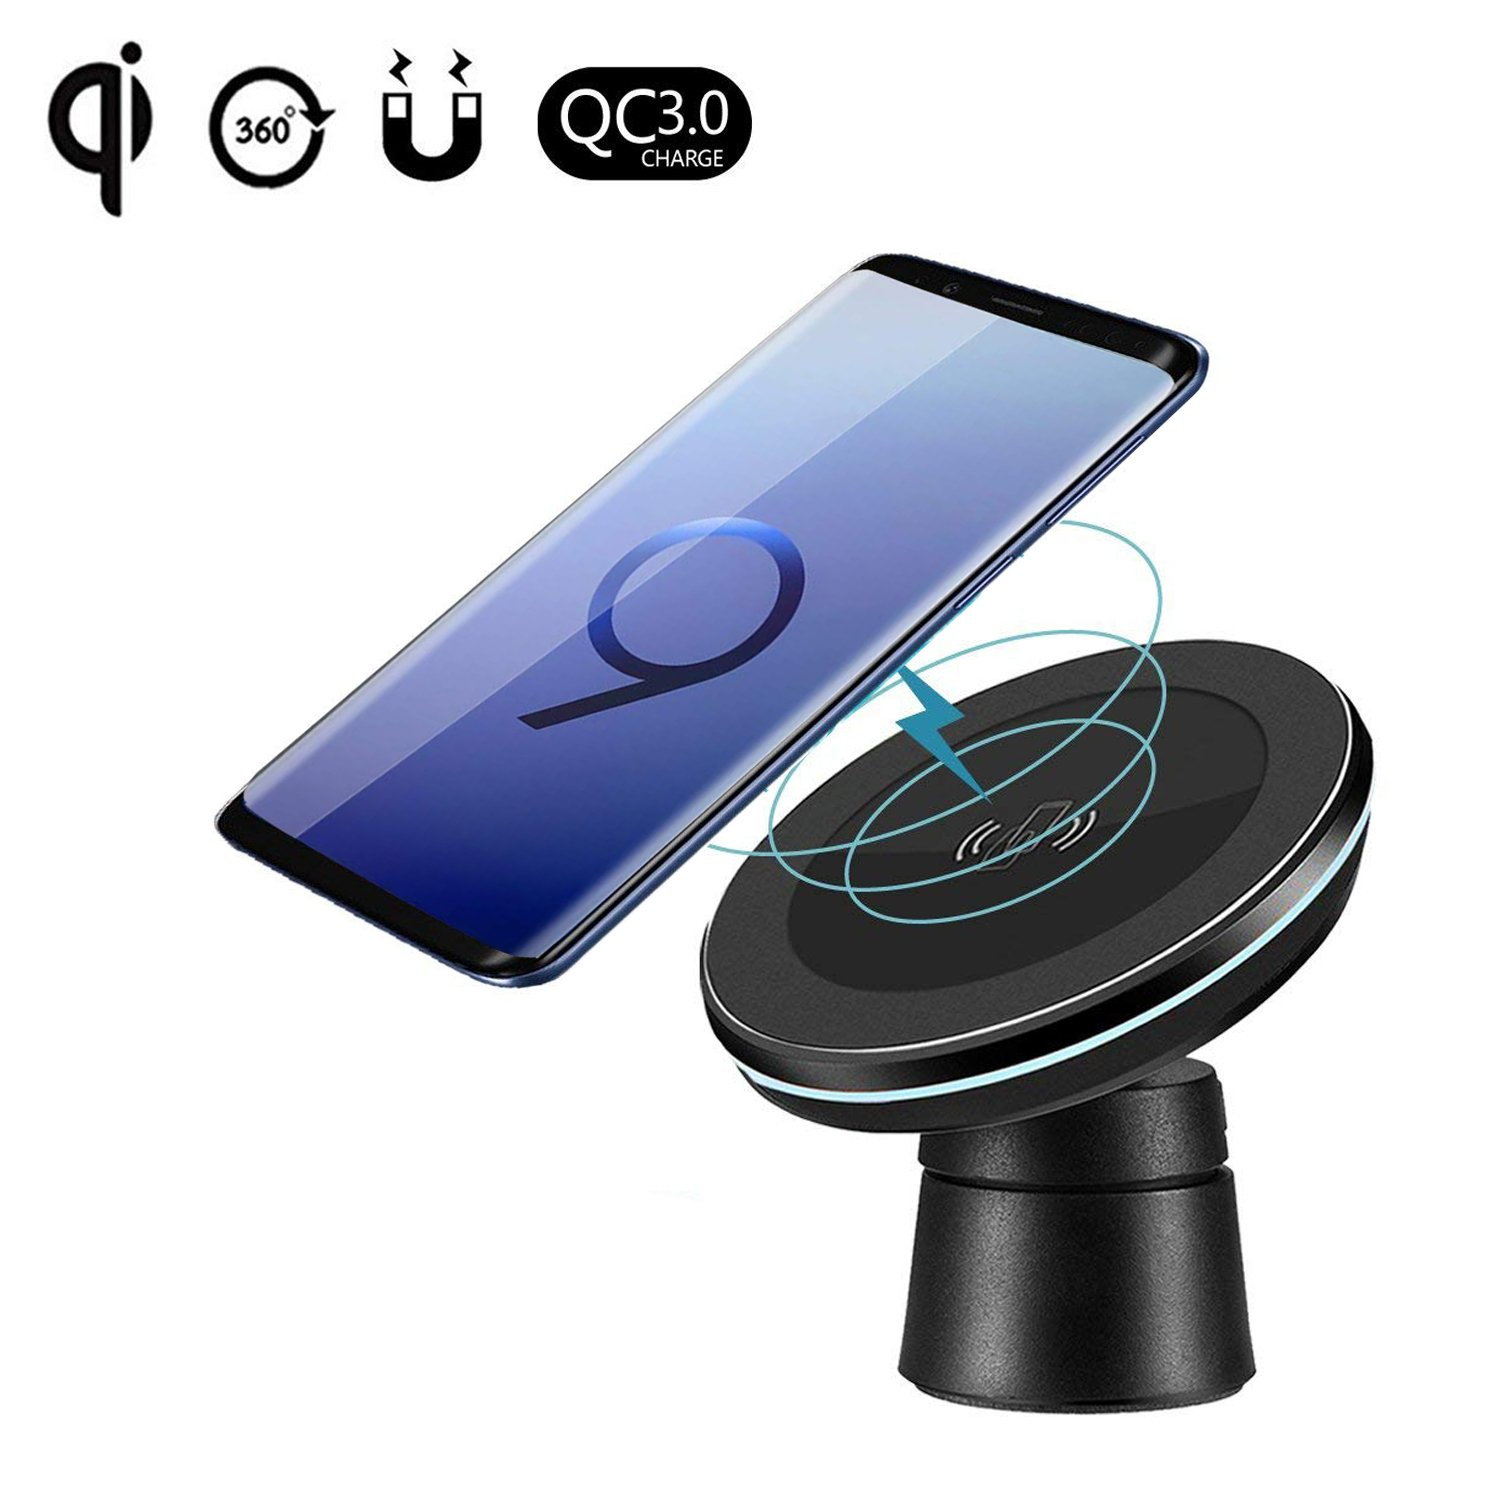 Fast Wireless Car Charger Magnetic Charging Pad Car Mount on Dashboard and Air Vent Phone Holder Compatible Samsung Galaxy S9 (Plus) Note 8 S8 Standard Wireless Charging Compatible iPhone X/8 Plus